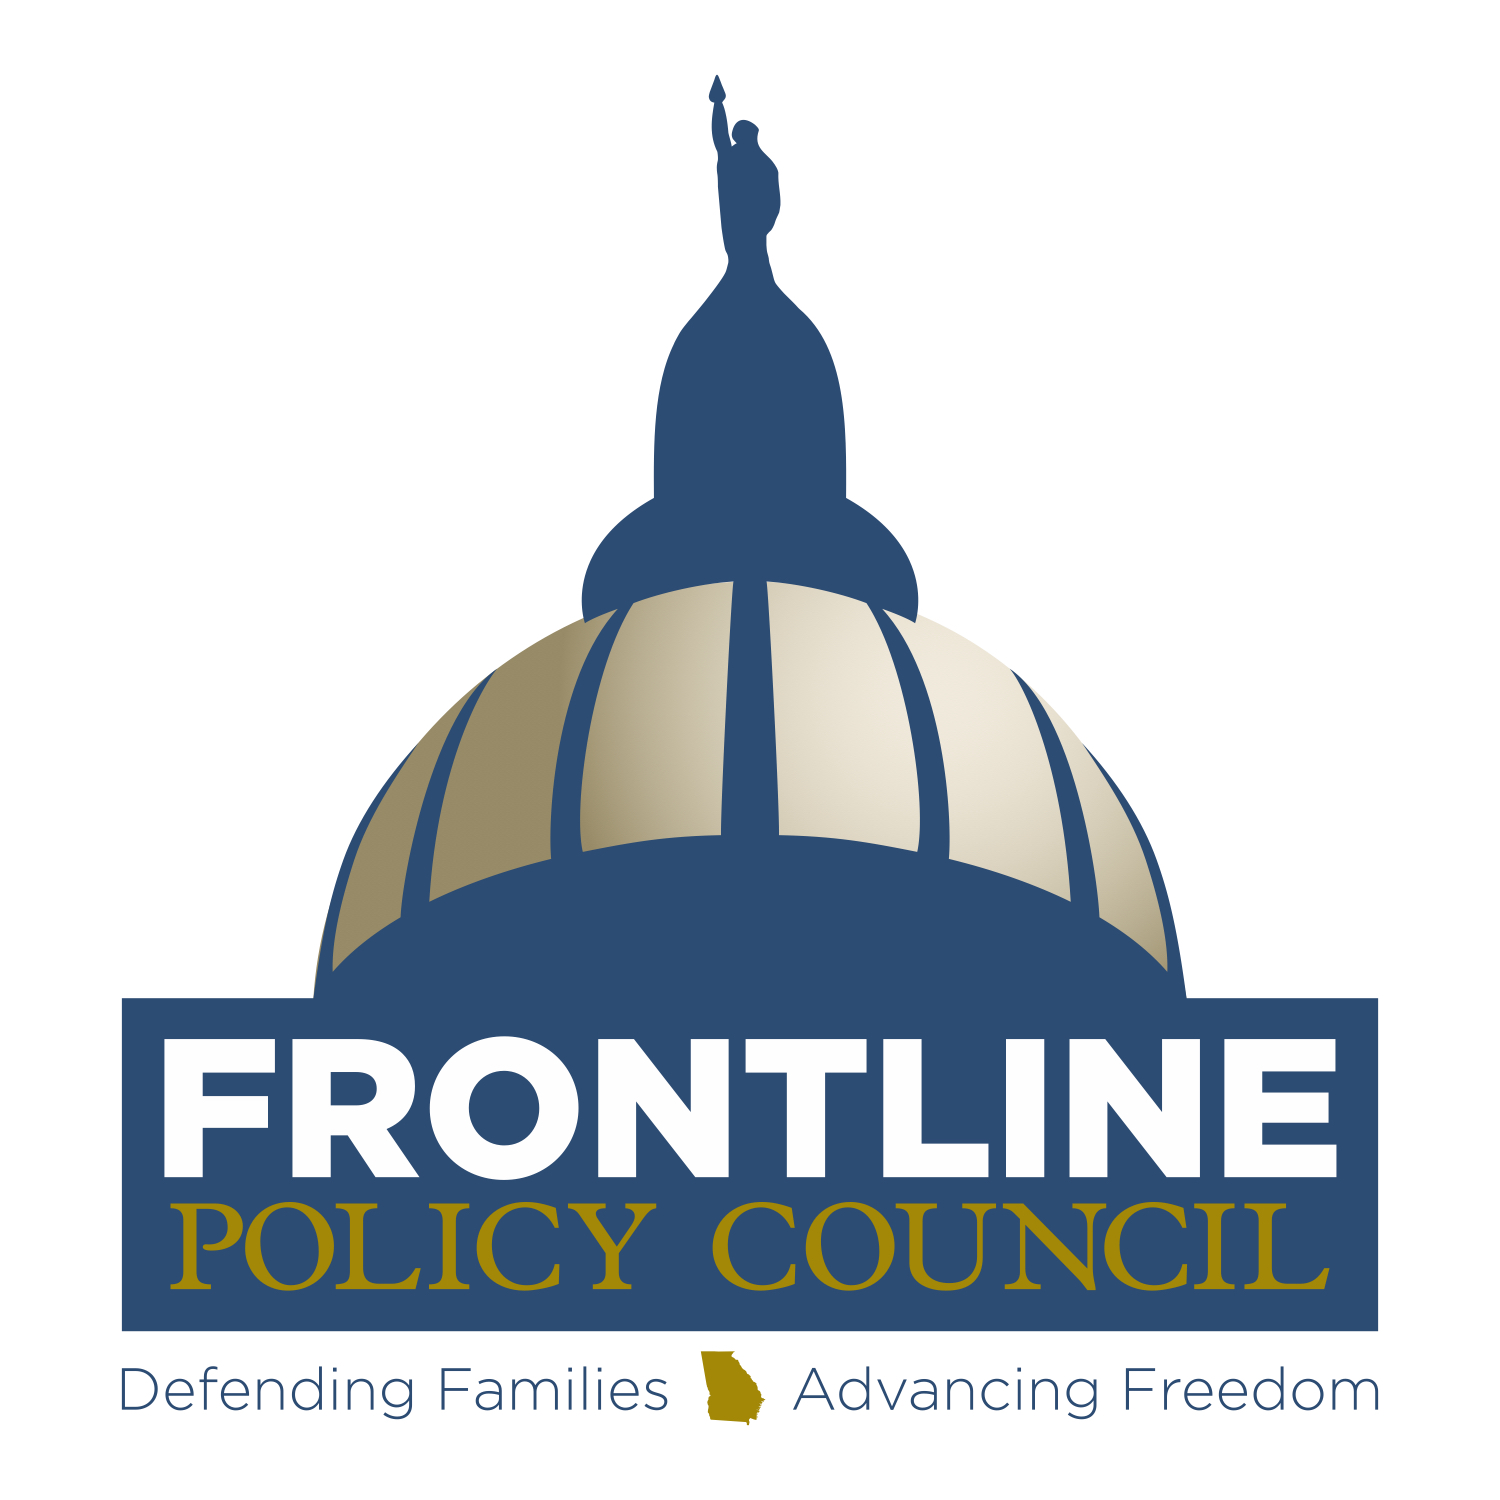 Frontline Policy